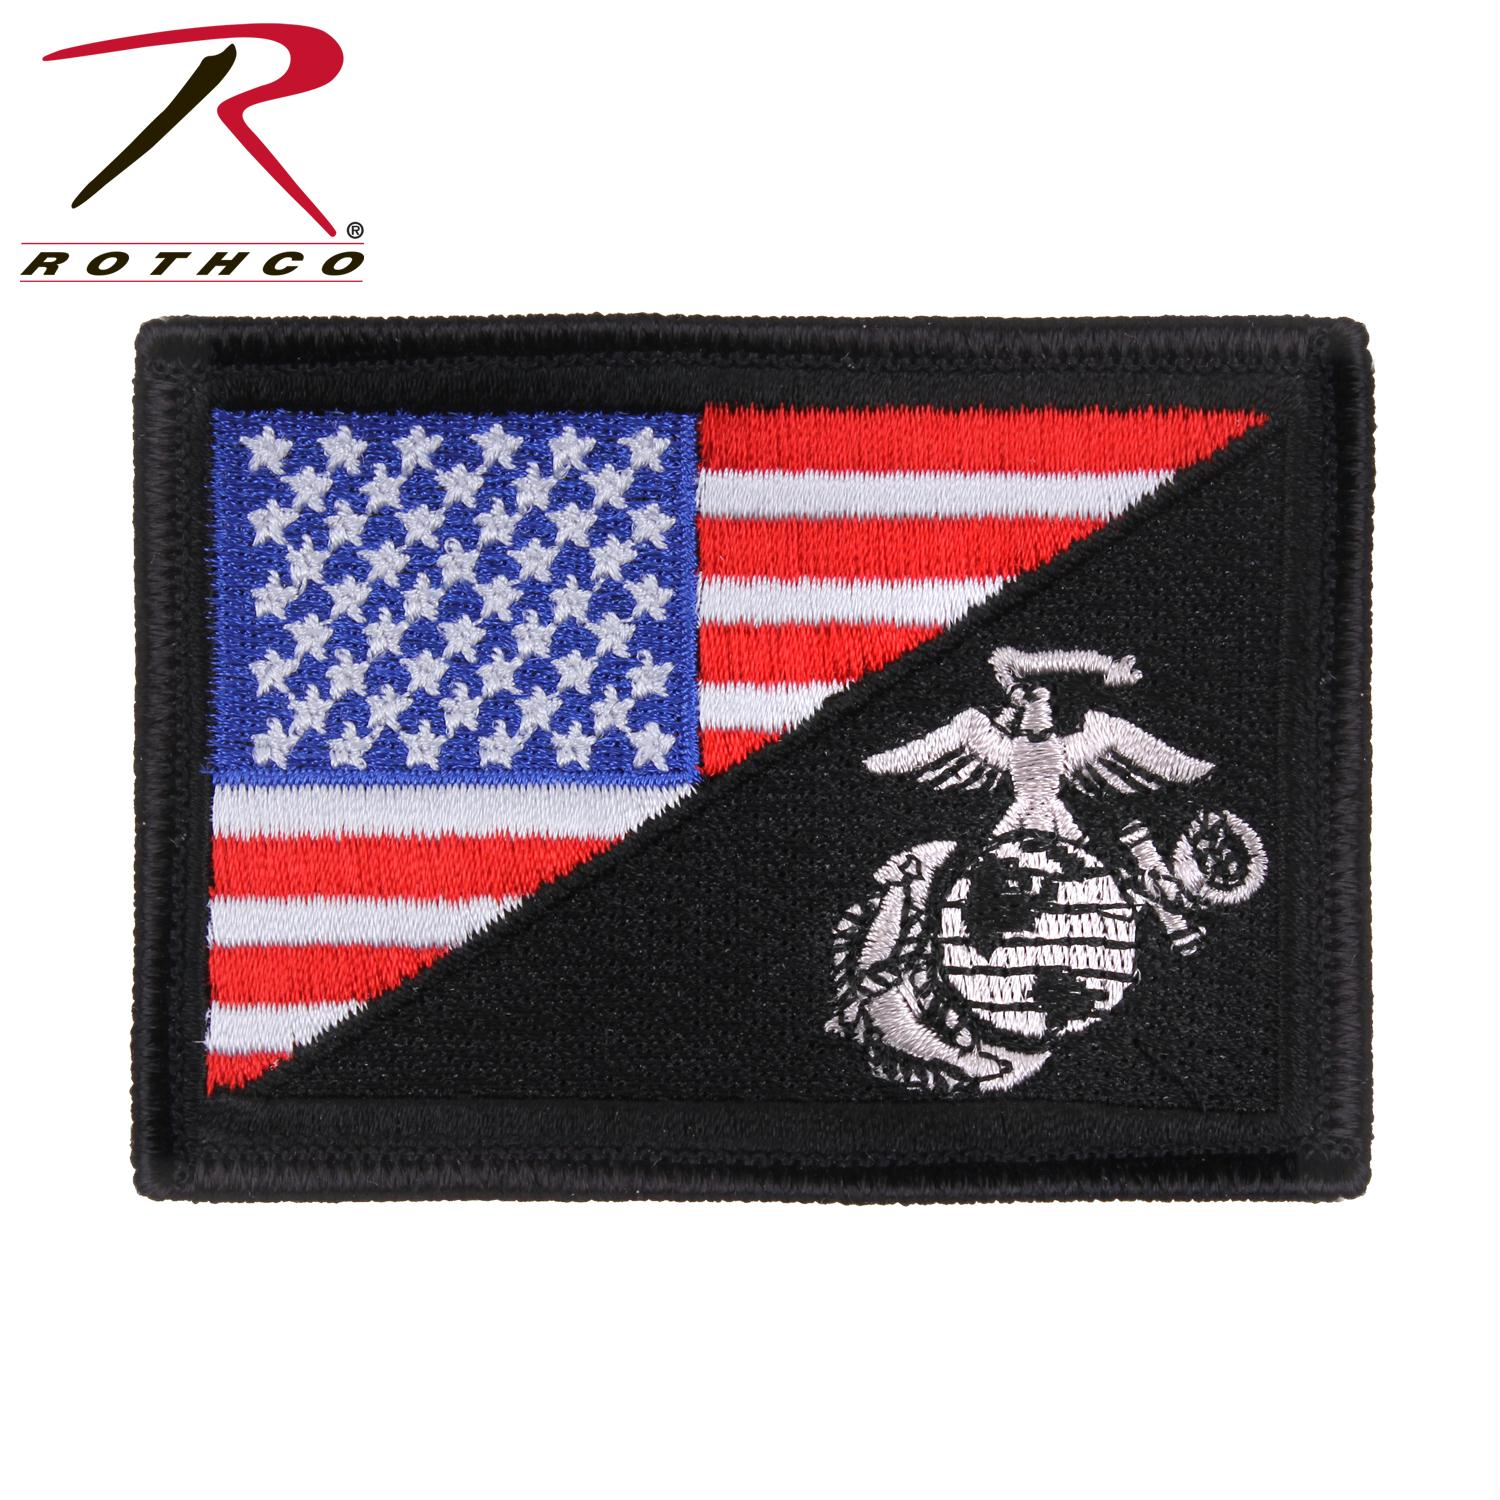 Rothco US Flag / USMC Globe and Anchor Morale Patch - Red / White / Blue